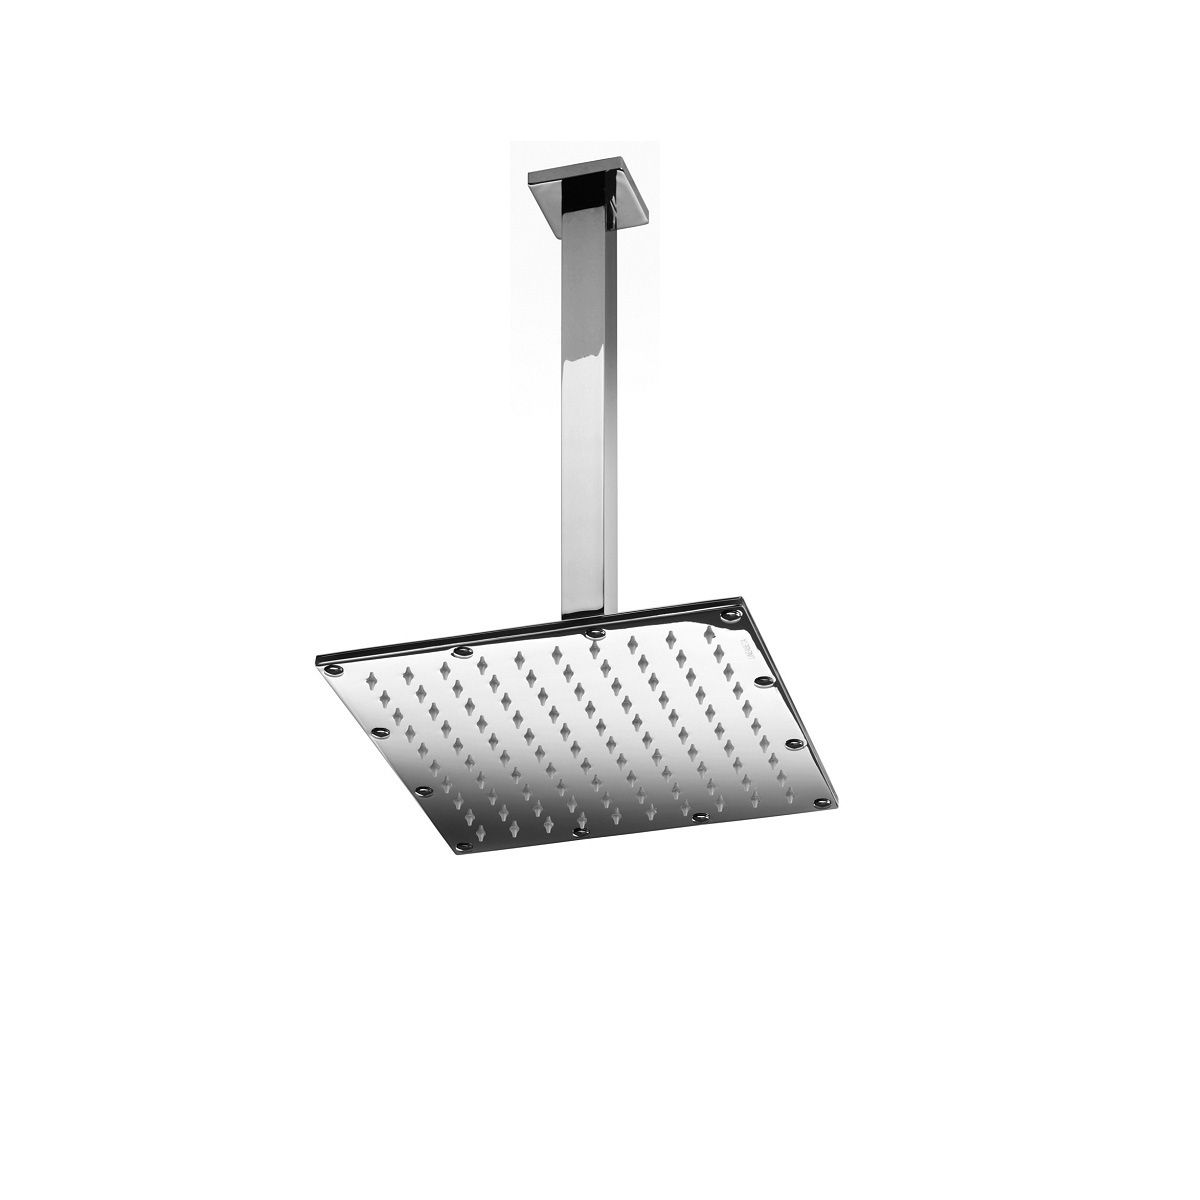 High Quality Shower Heads are Essential - Supioni Rain Shower Head